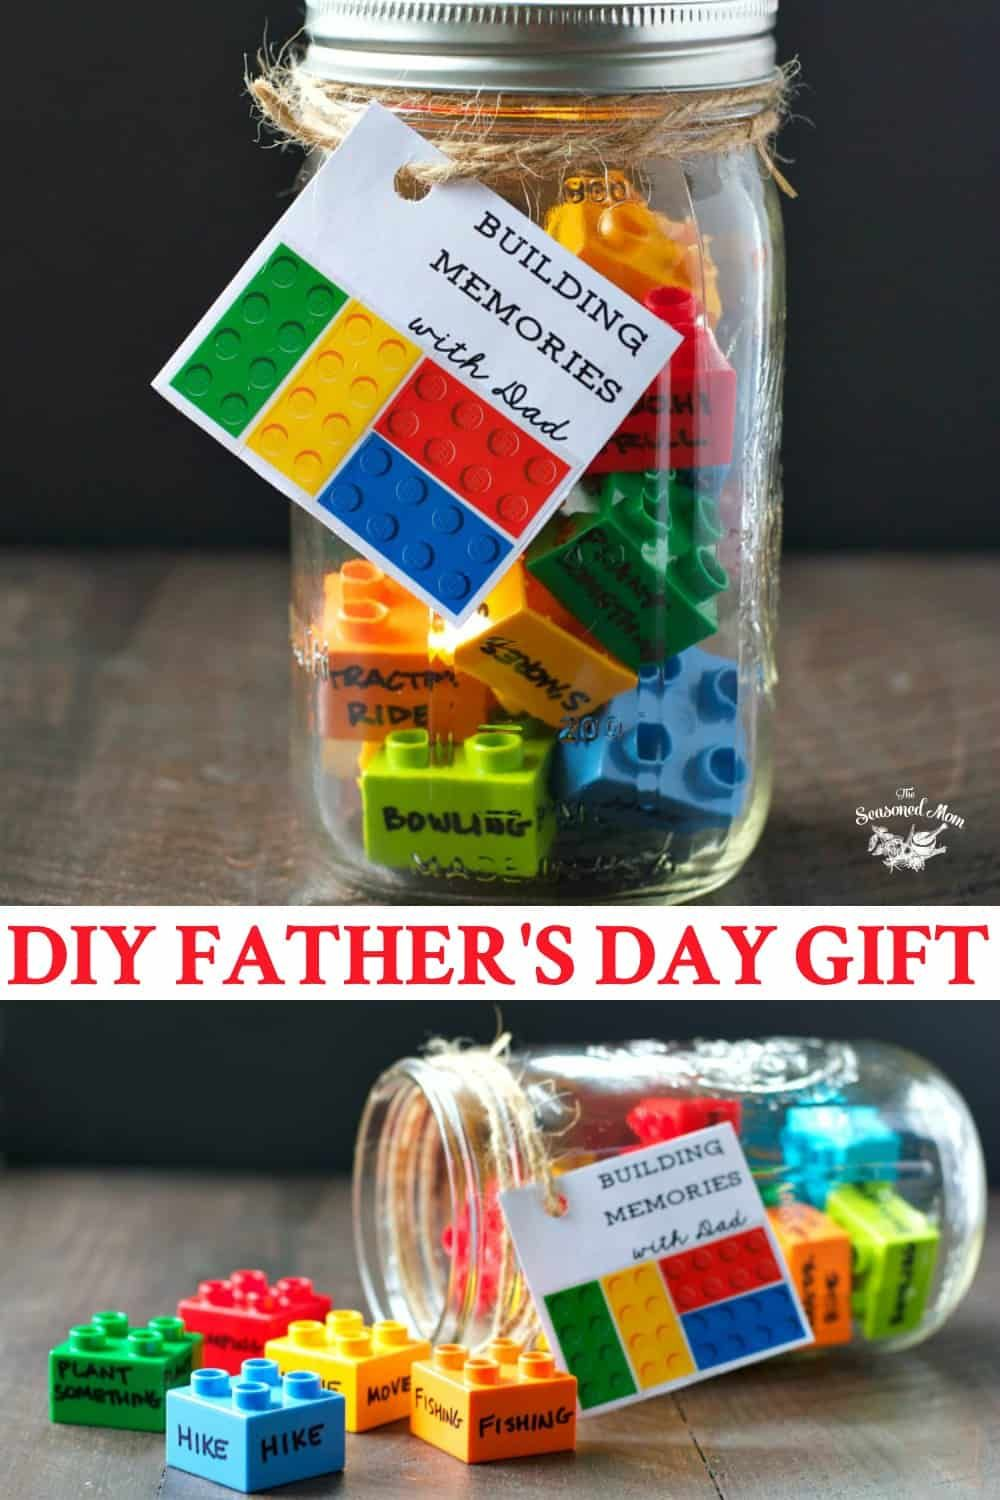 DIY Father's Day Gift: Building Memories with Dad | Father's day diy, Homemade fathers day gifts ...